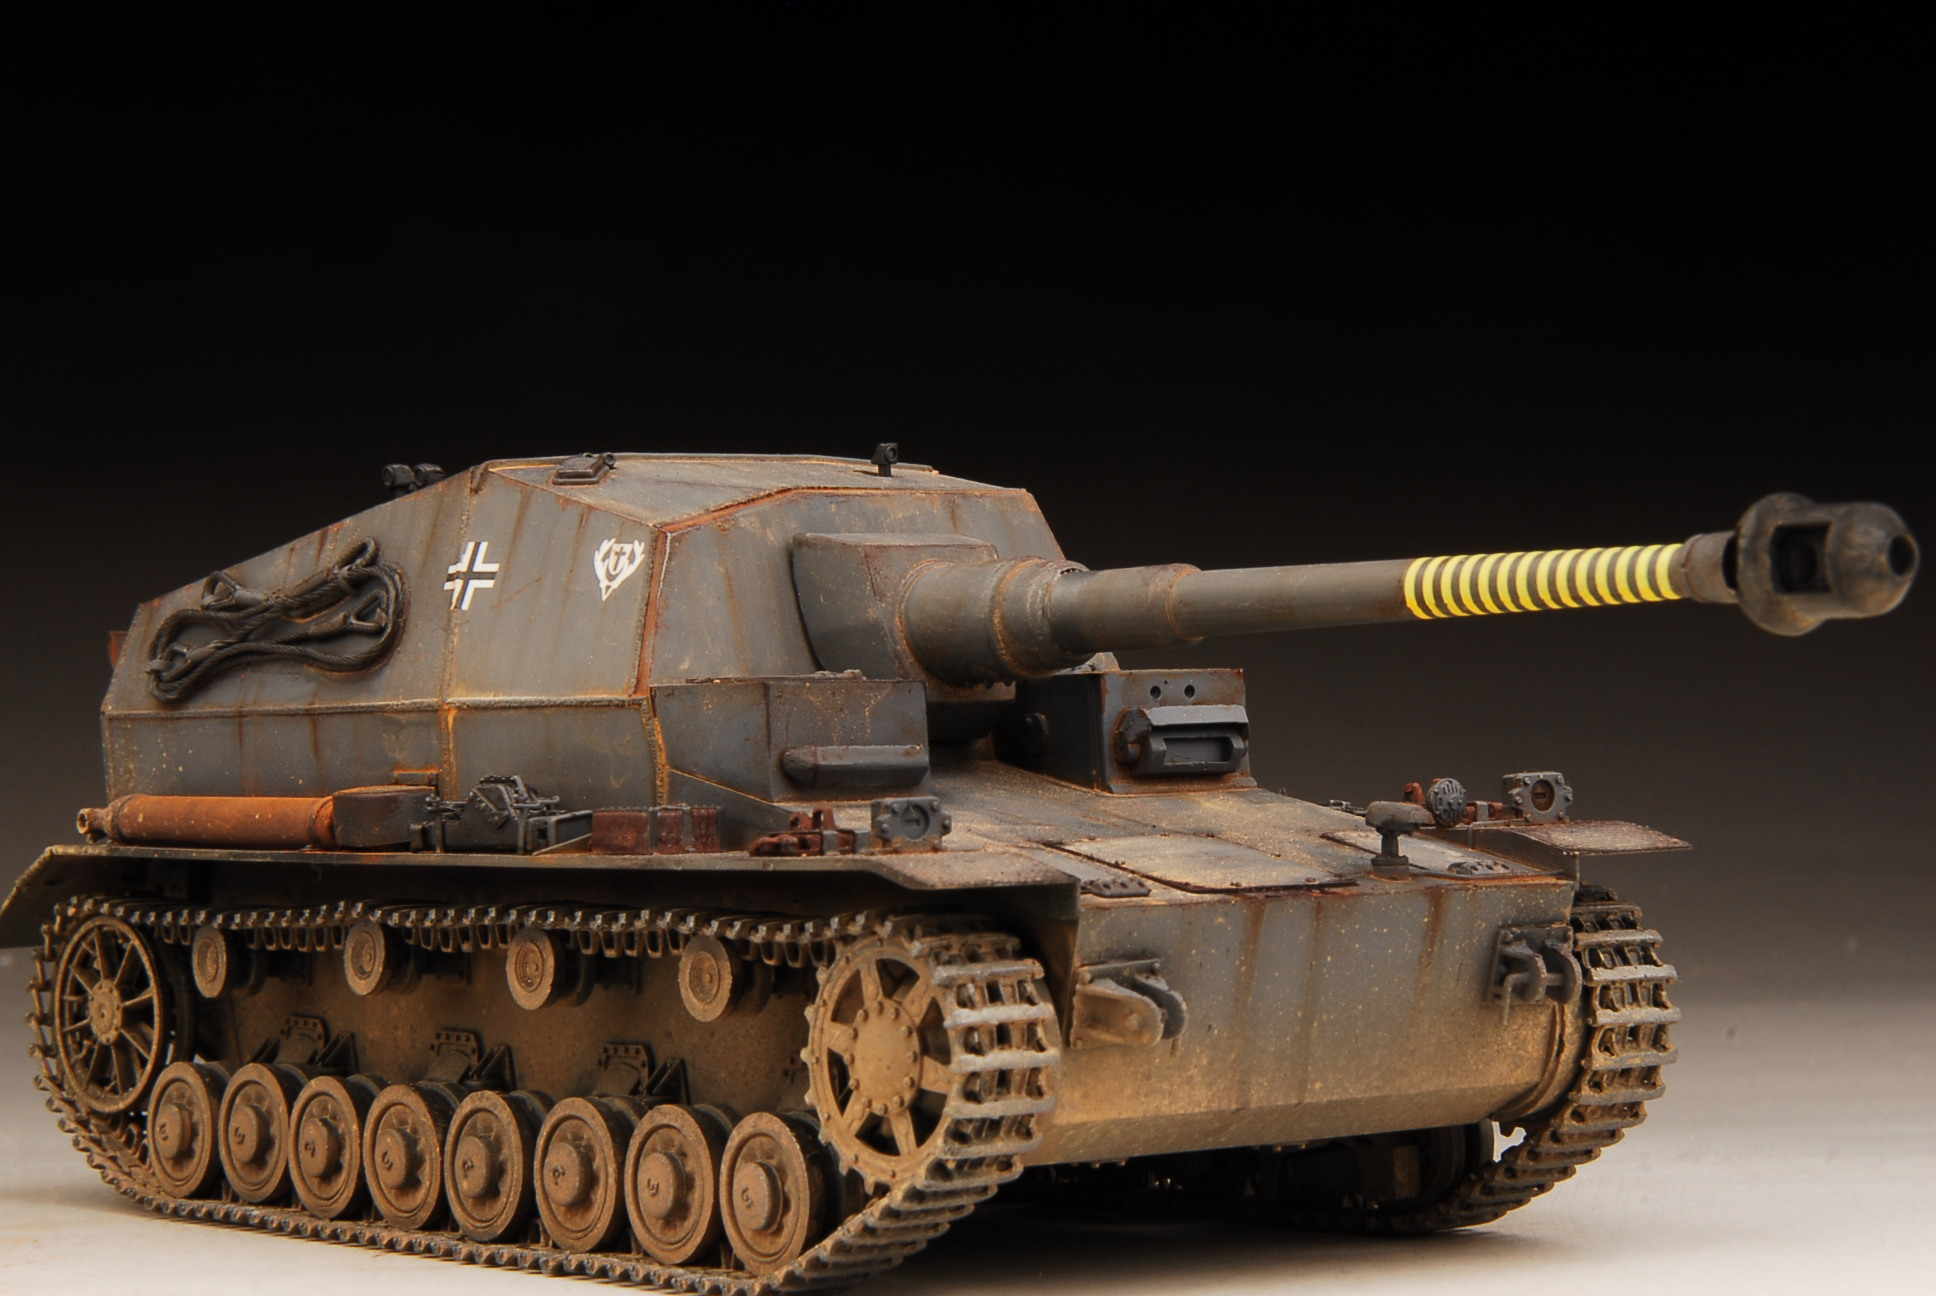 Details about Award Winner Built 1/35 German 10 5cm Pz sfl IV a Dicker Max  Anti-Tank Gun+PE